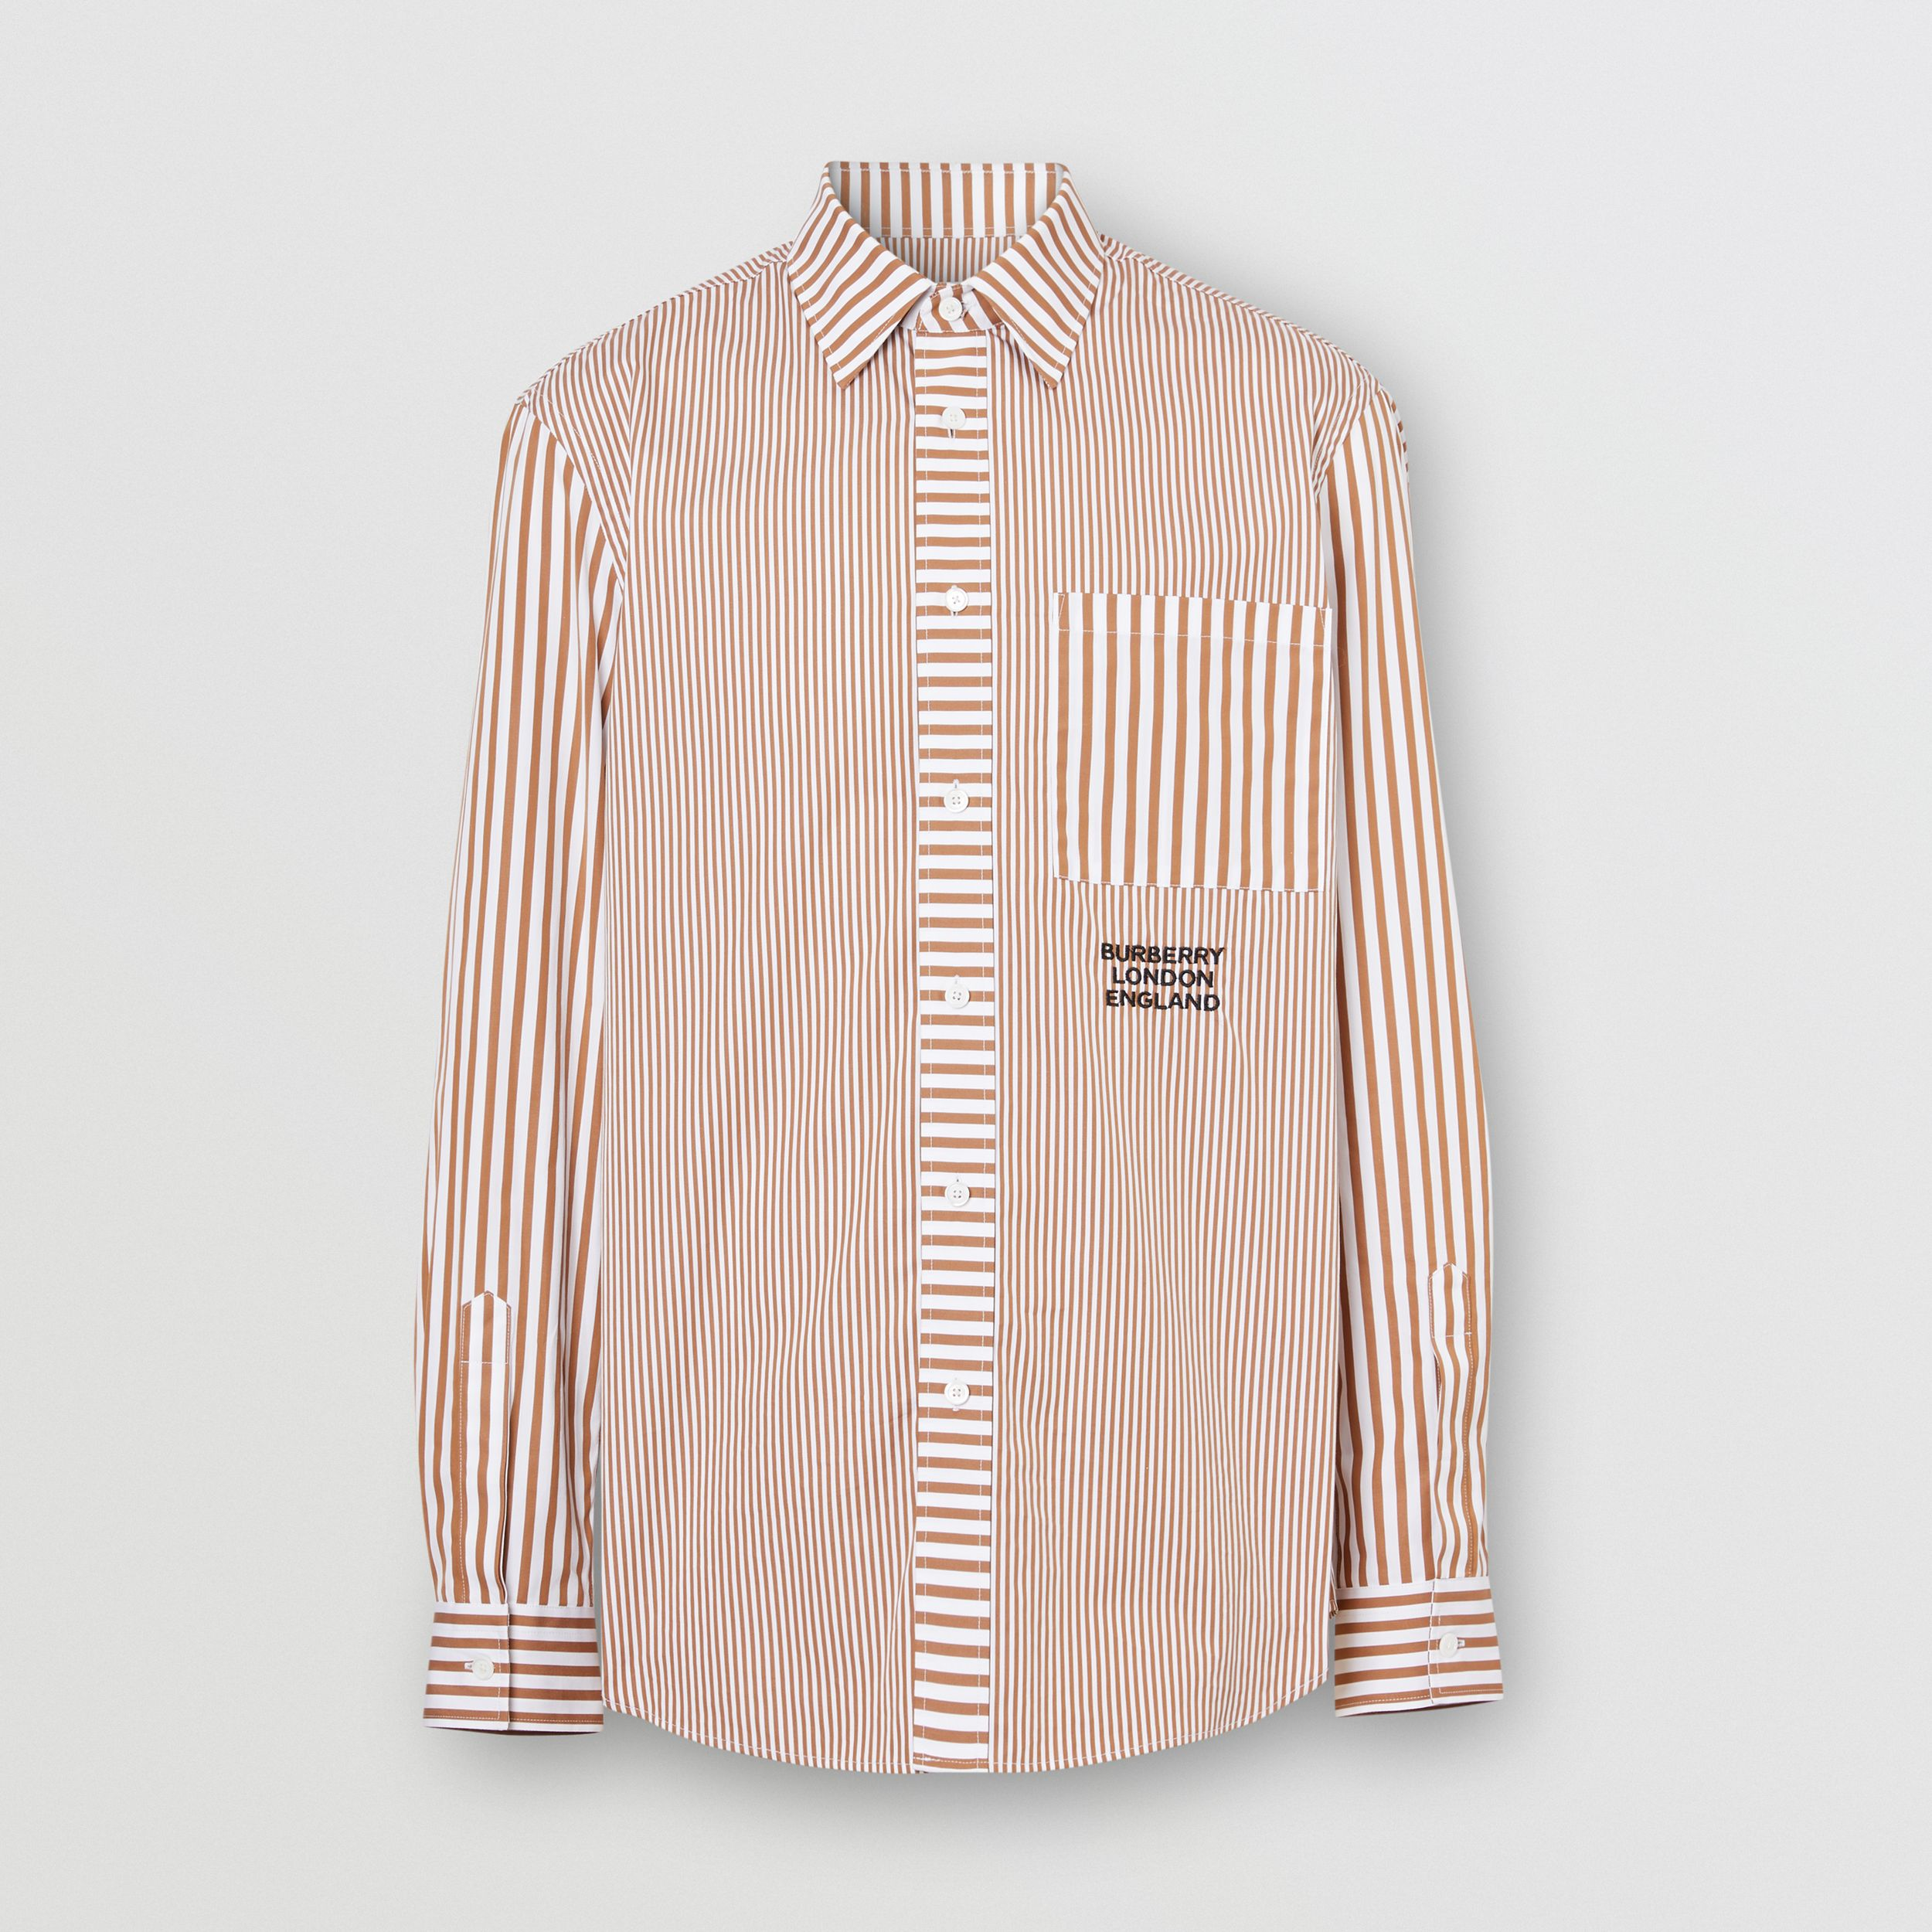 Embroidered Logo Patchwork Striped Cotton Shirt in Camel - Men | Burberry - 4